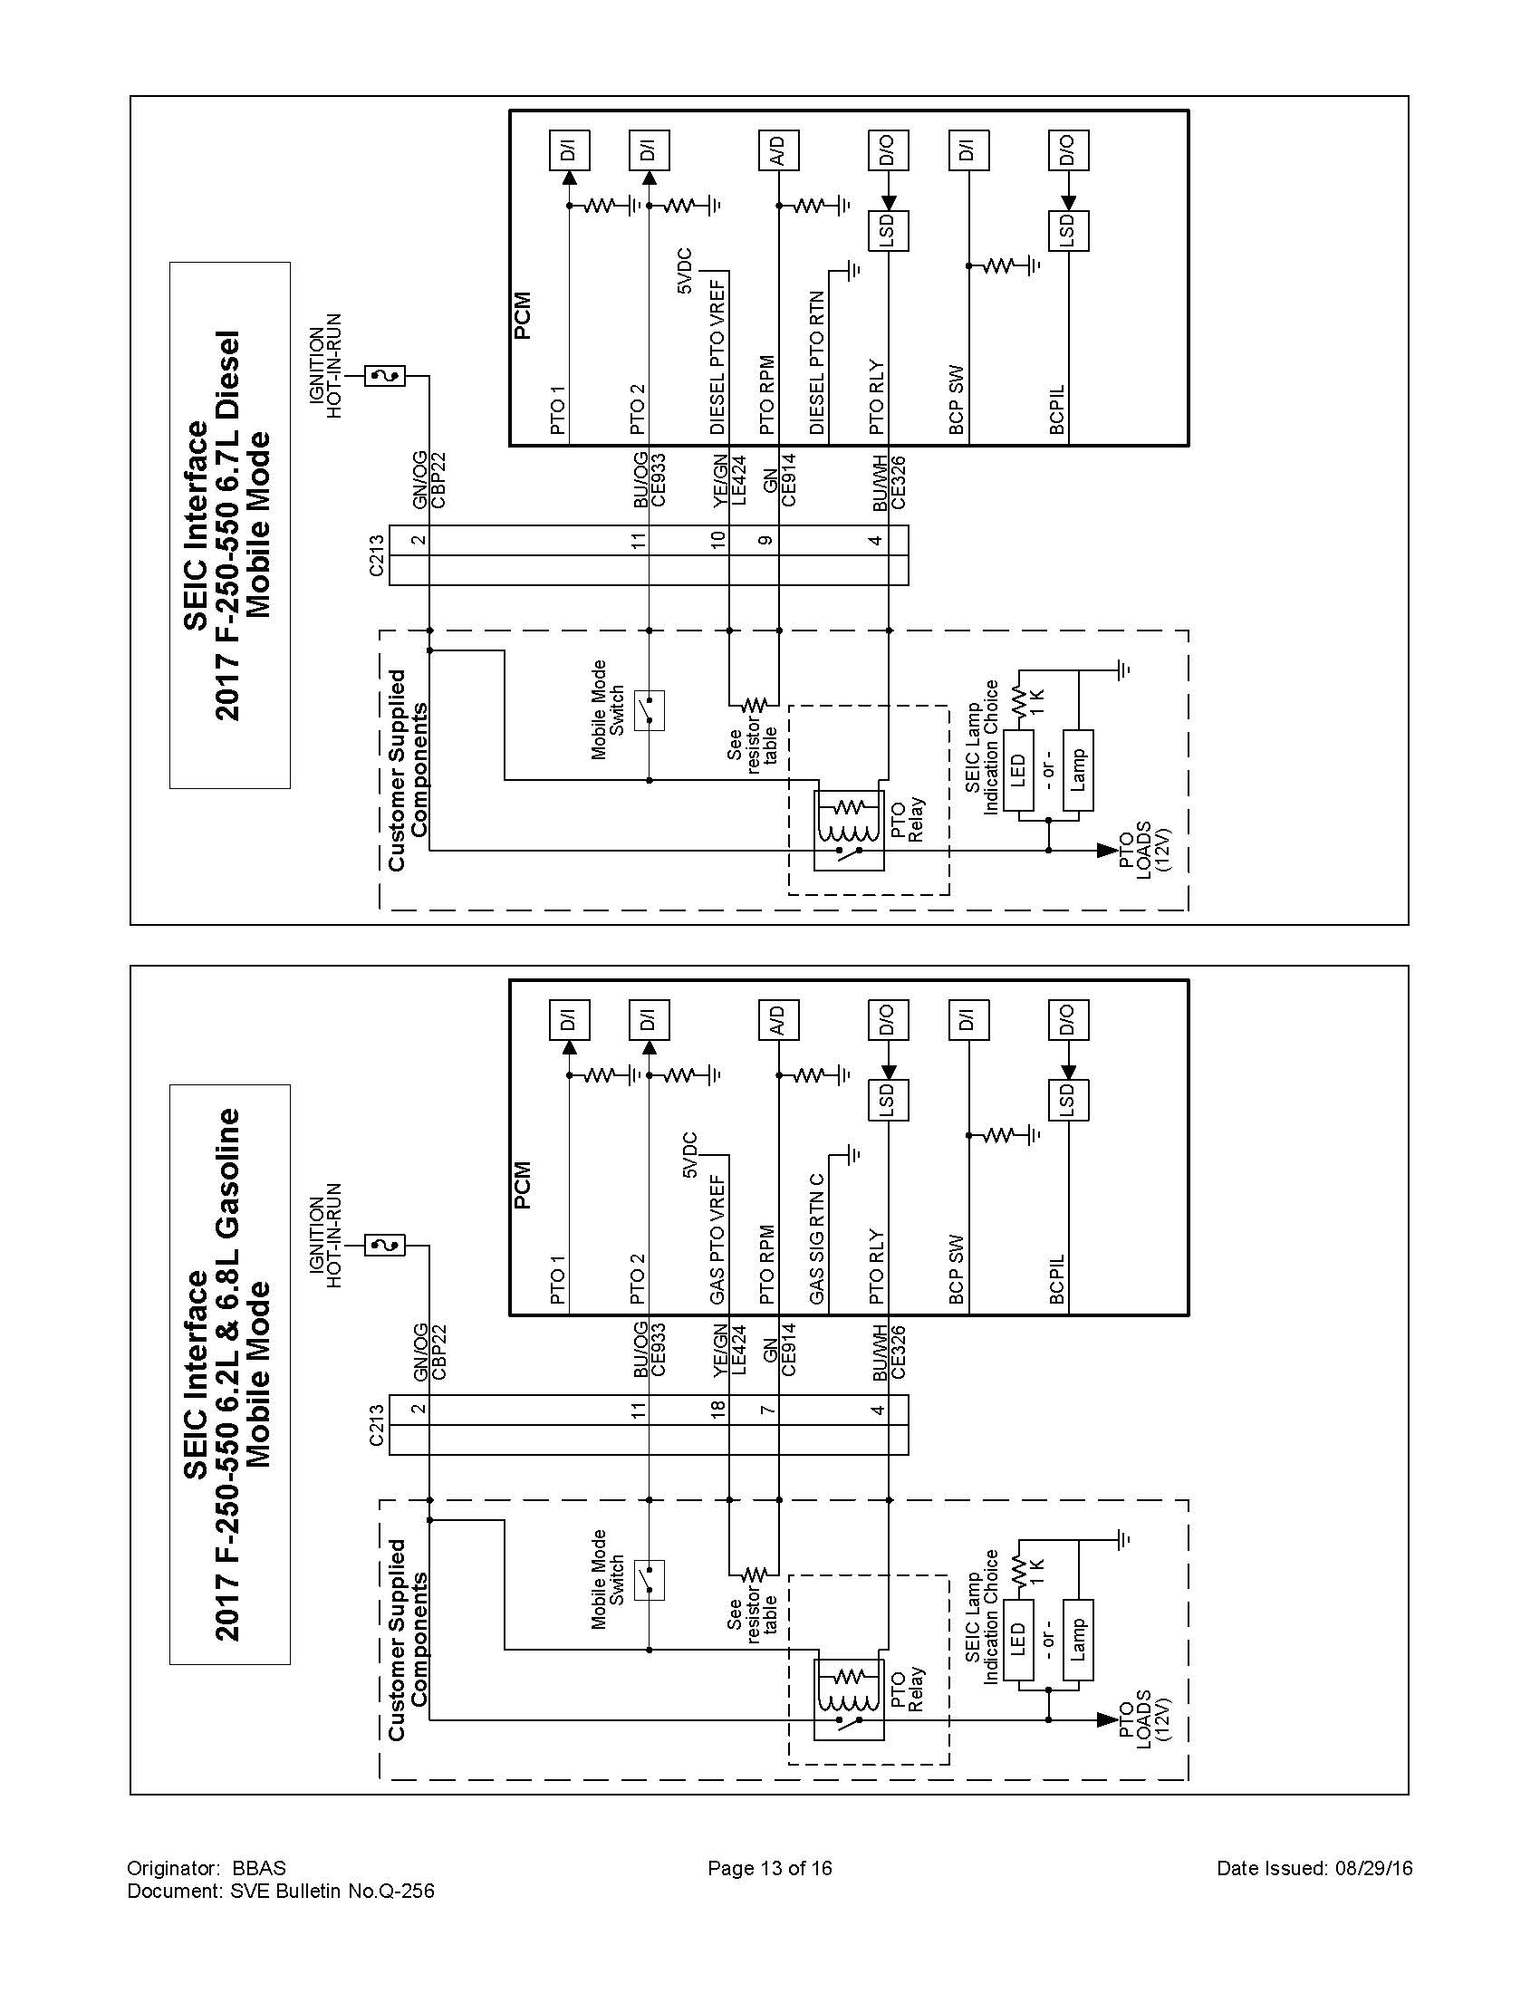 2011 ford f250 6.7 fuse box diagram